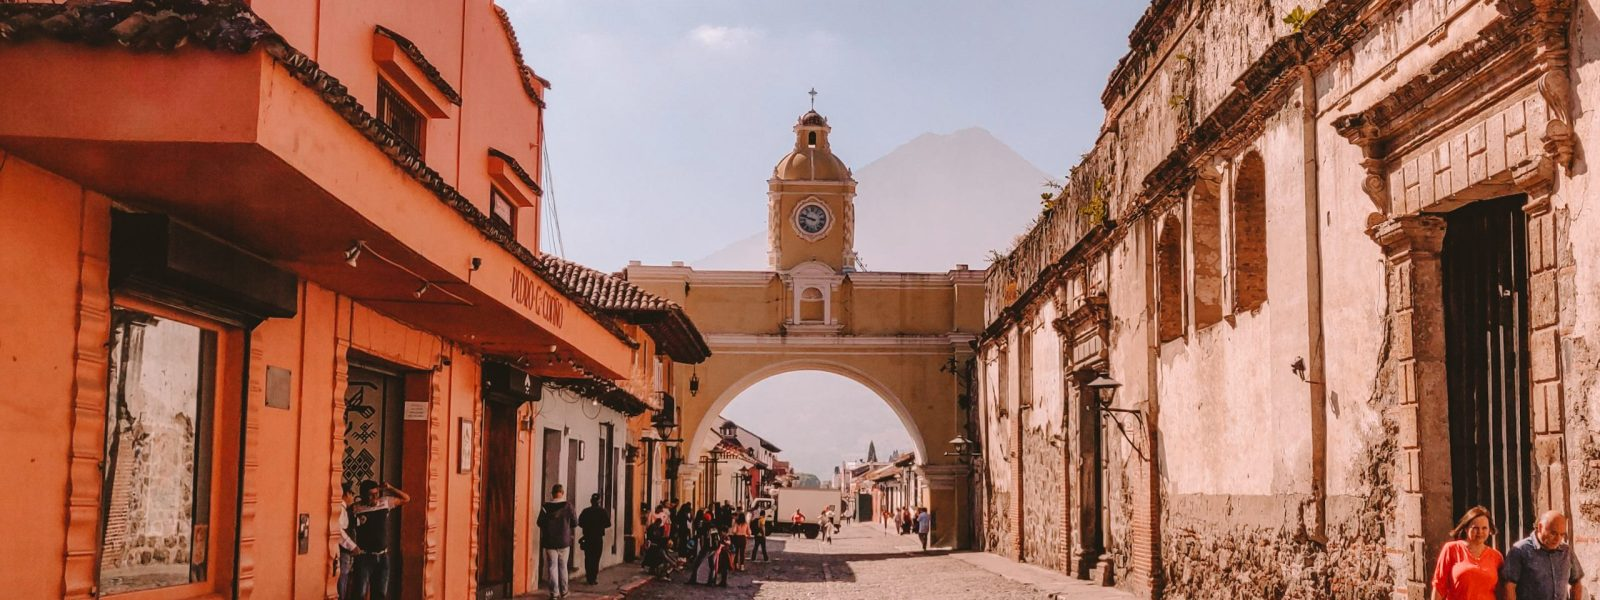 Visiting Antigua de Guatemala: things to do and see